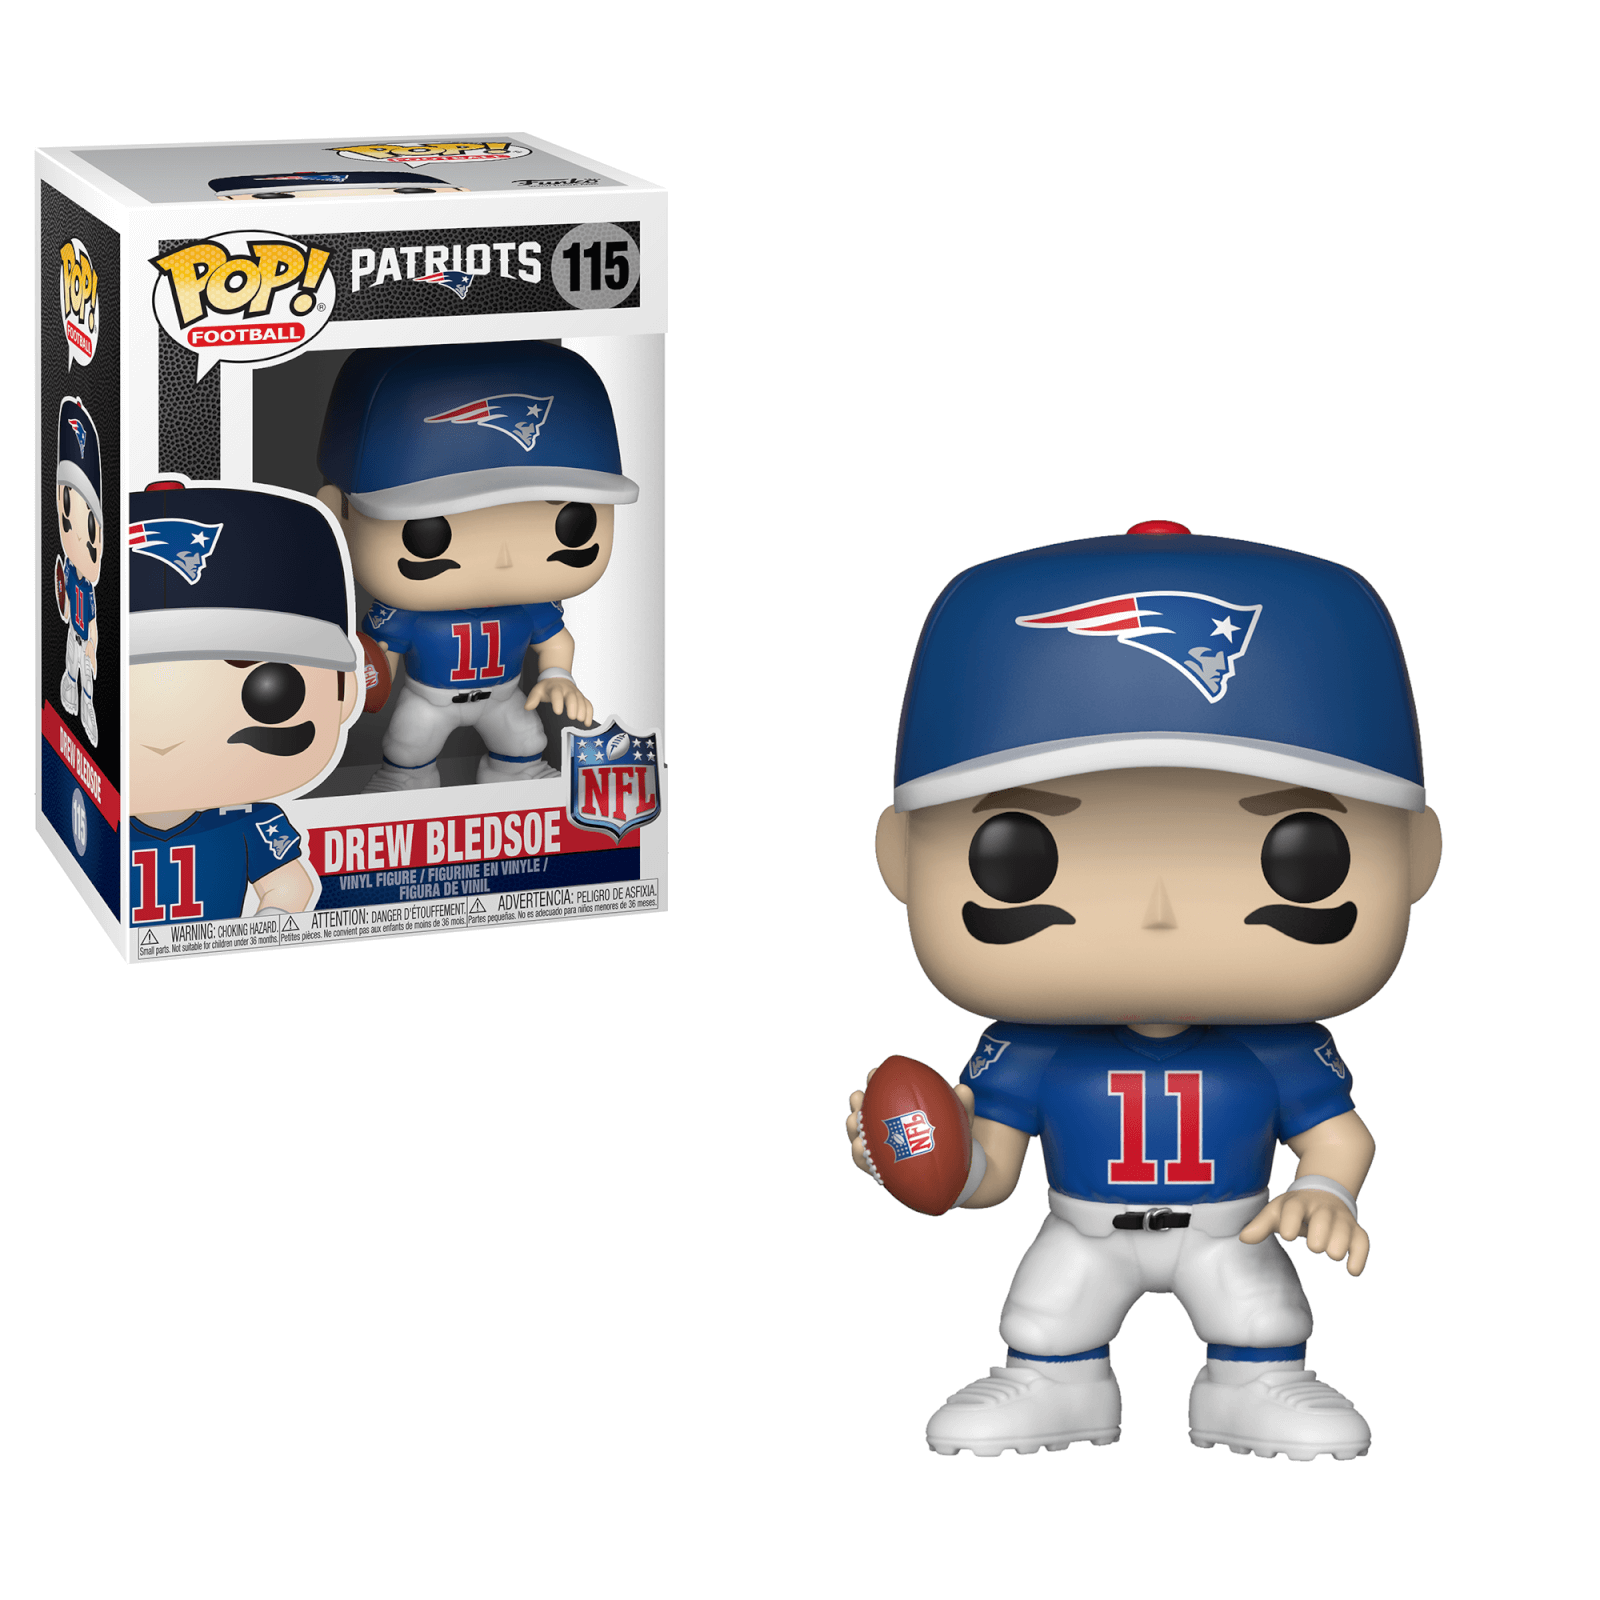 POP! Football - NFL - Drew Bledsoe